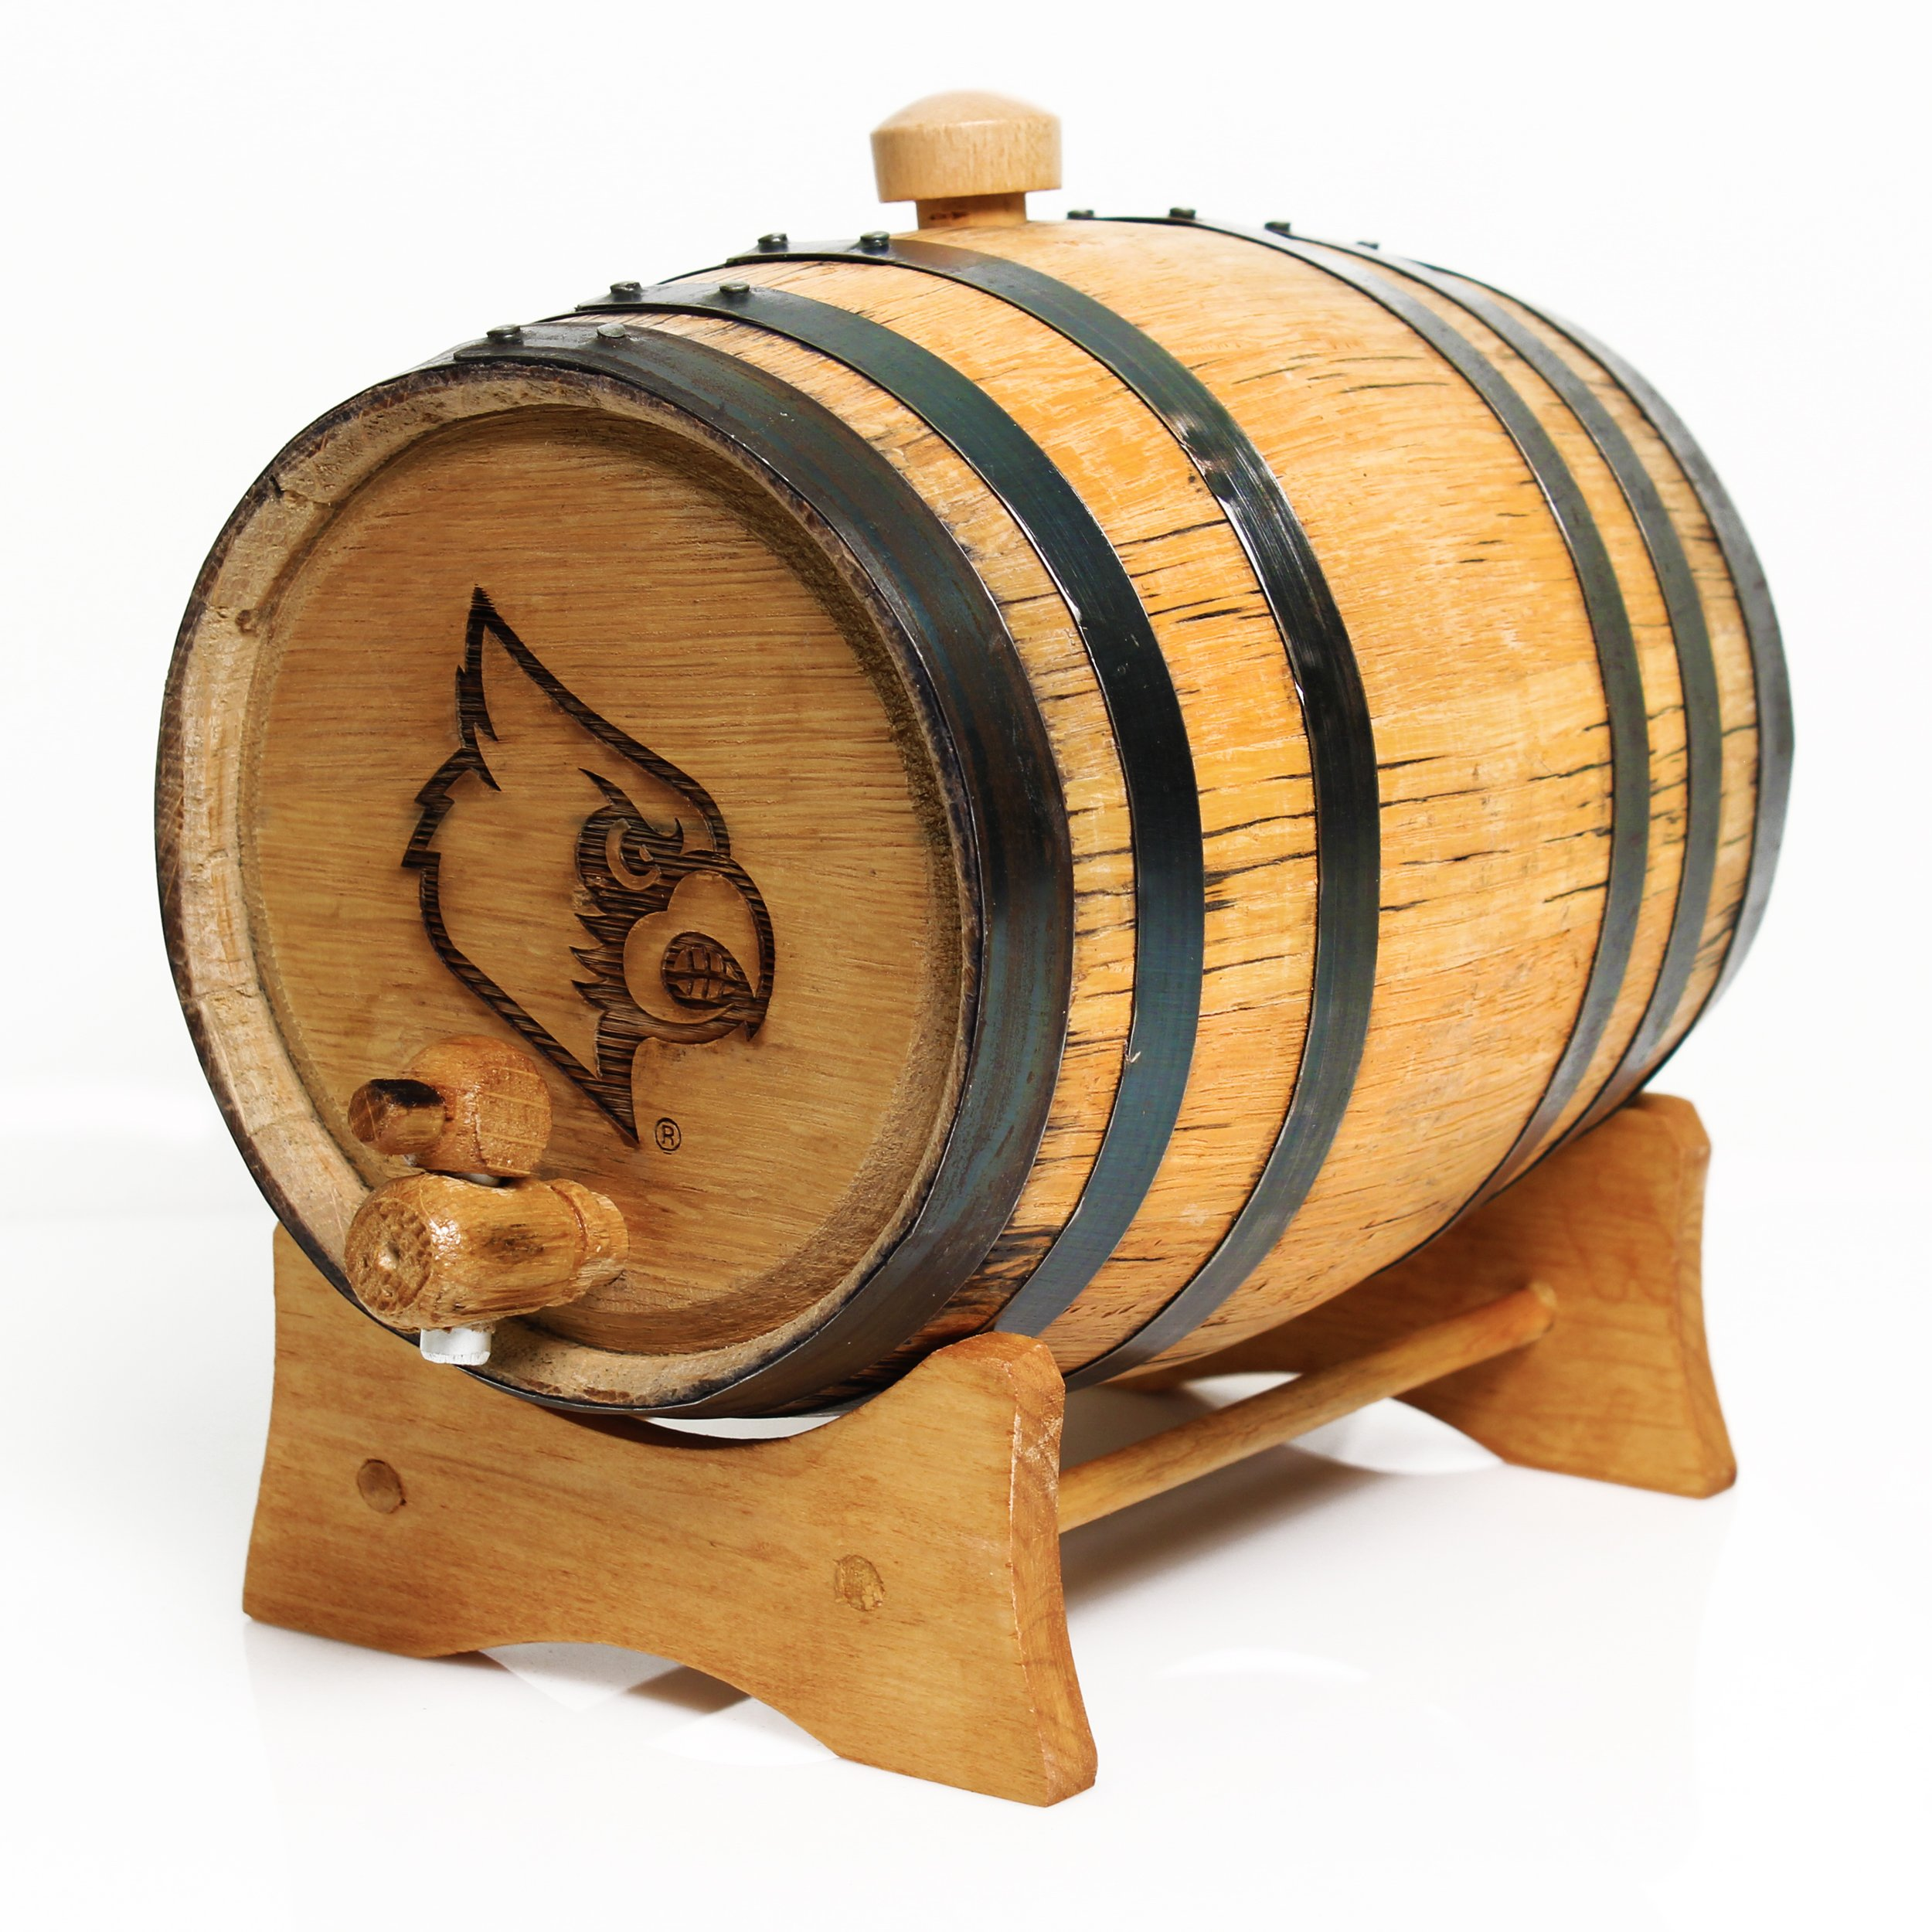 Cathy's Concepts University of Louisville Bluegrass Barrel, Large by Cathy's Concepts